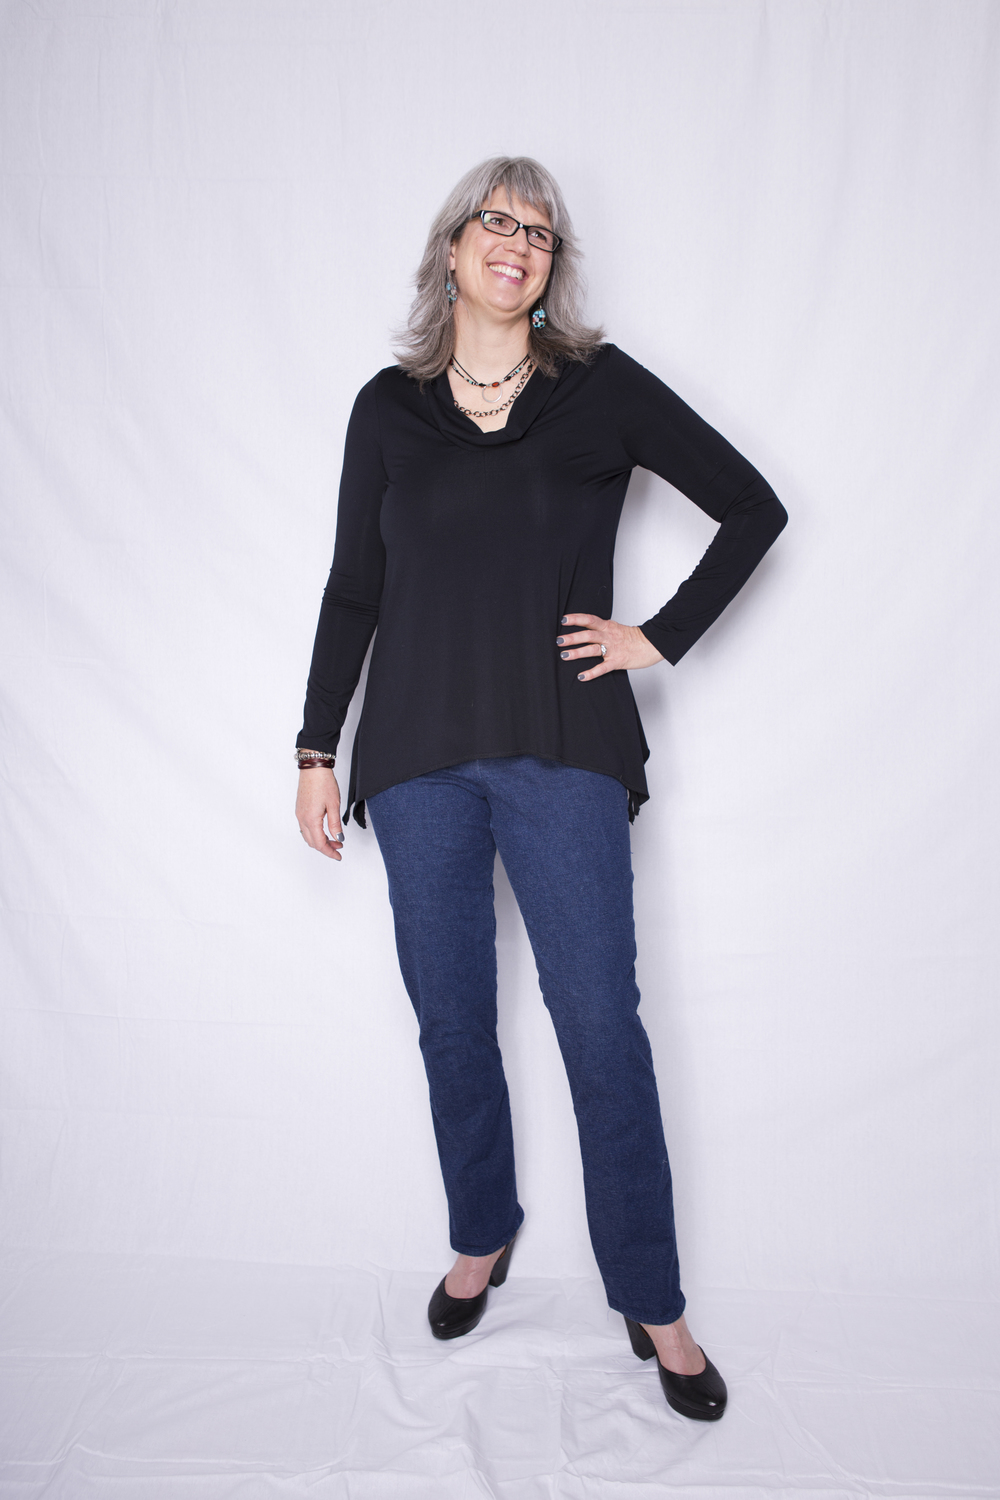 Style Arc Swing Top with jeans. Photo by Treehouse Photography